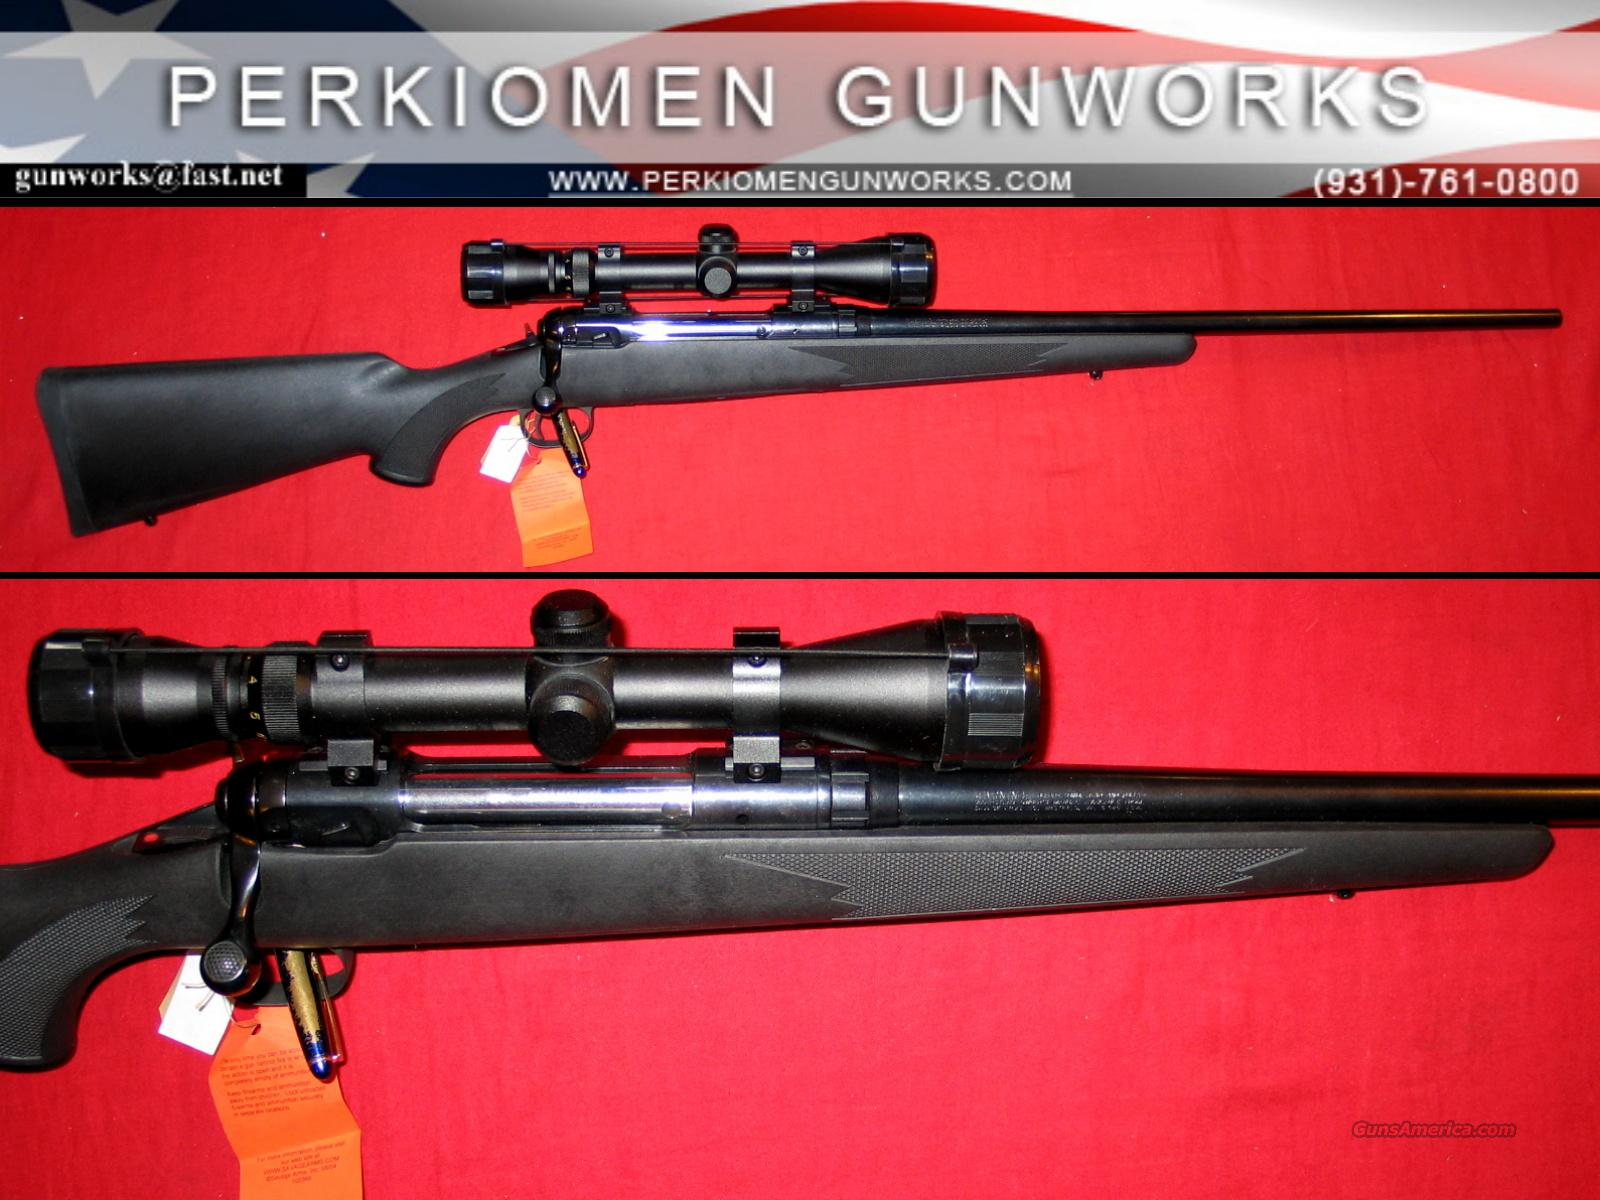 111 FXP3 .30-06 w/Scope - as new  Guns > Rifles > Savage Rifles > Standard Bolt Action > Sporting